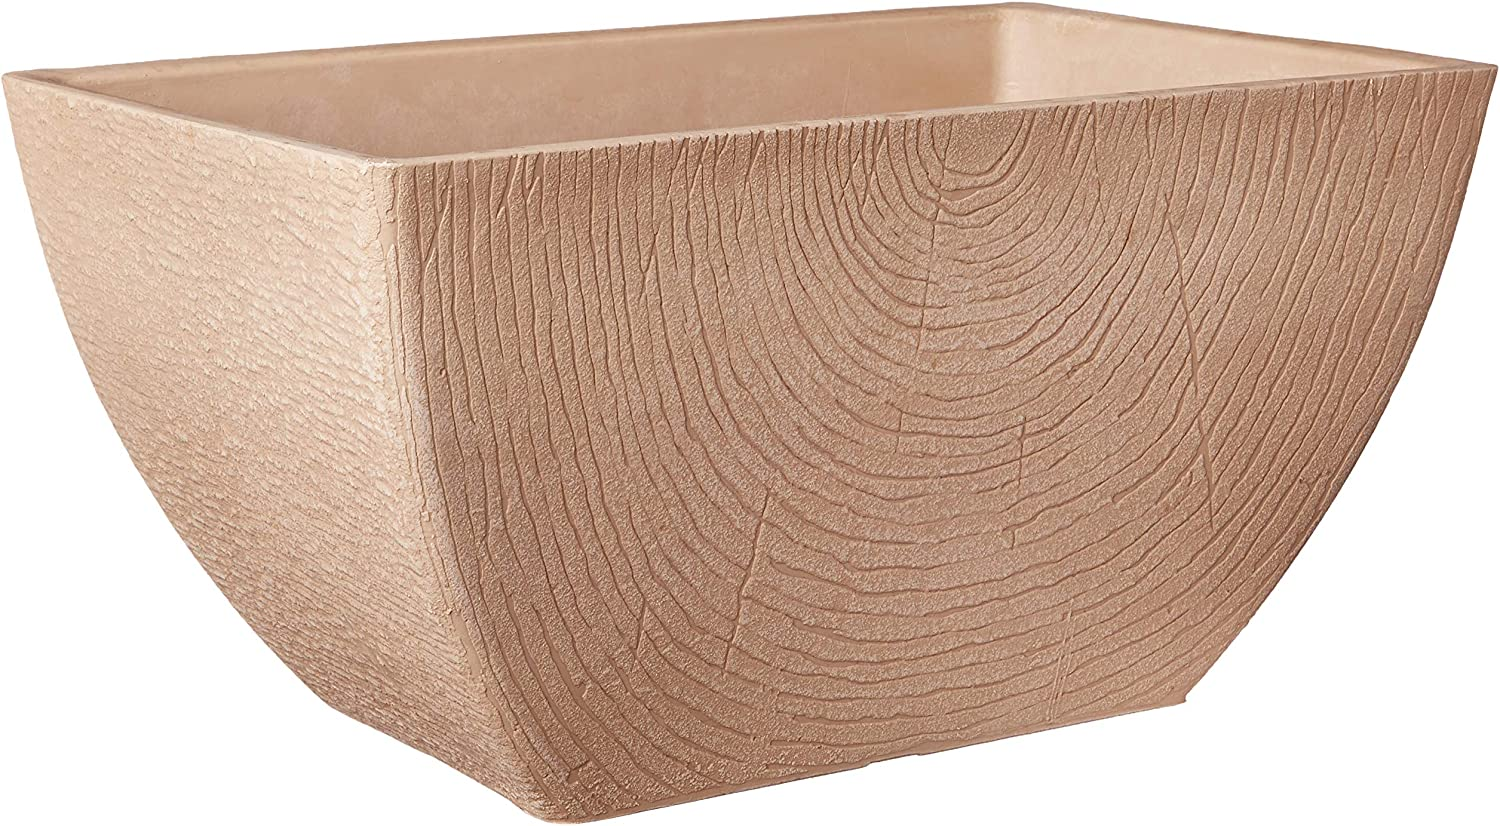 Arcadia Garden Products Q41B Concentric Window Box, 16 x 10.25 x 8.5 inches, Beige